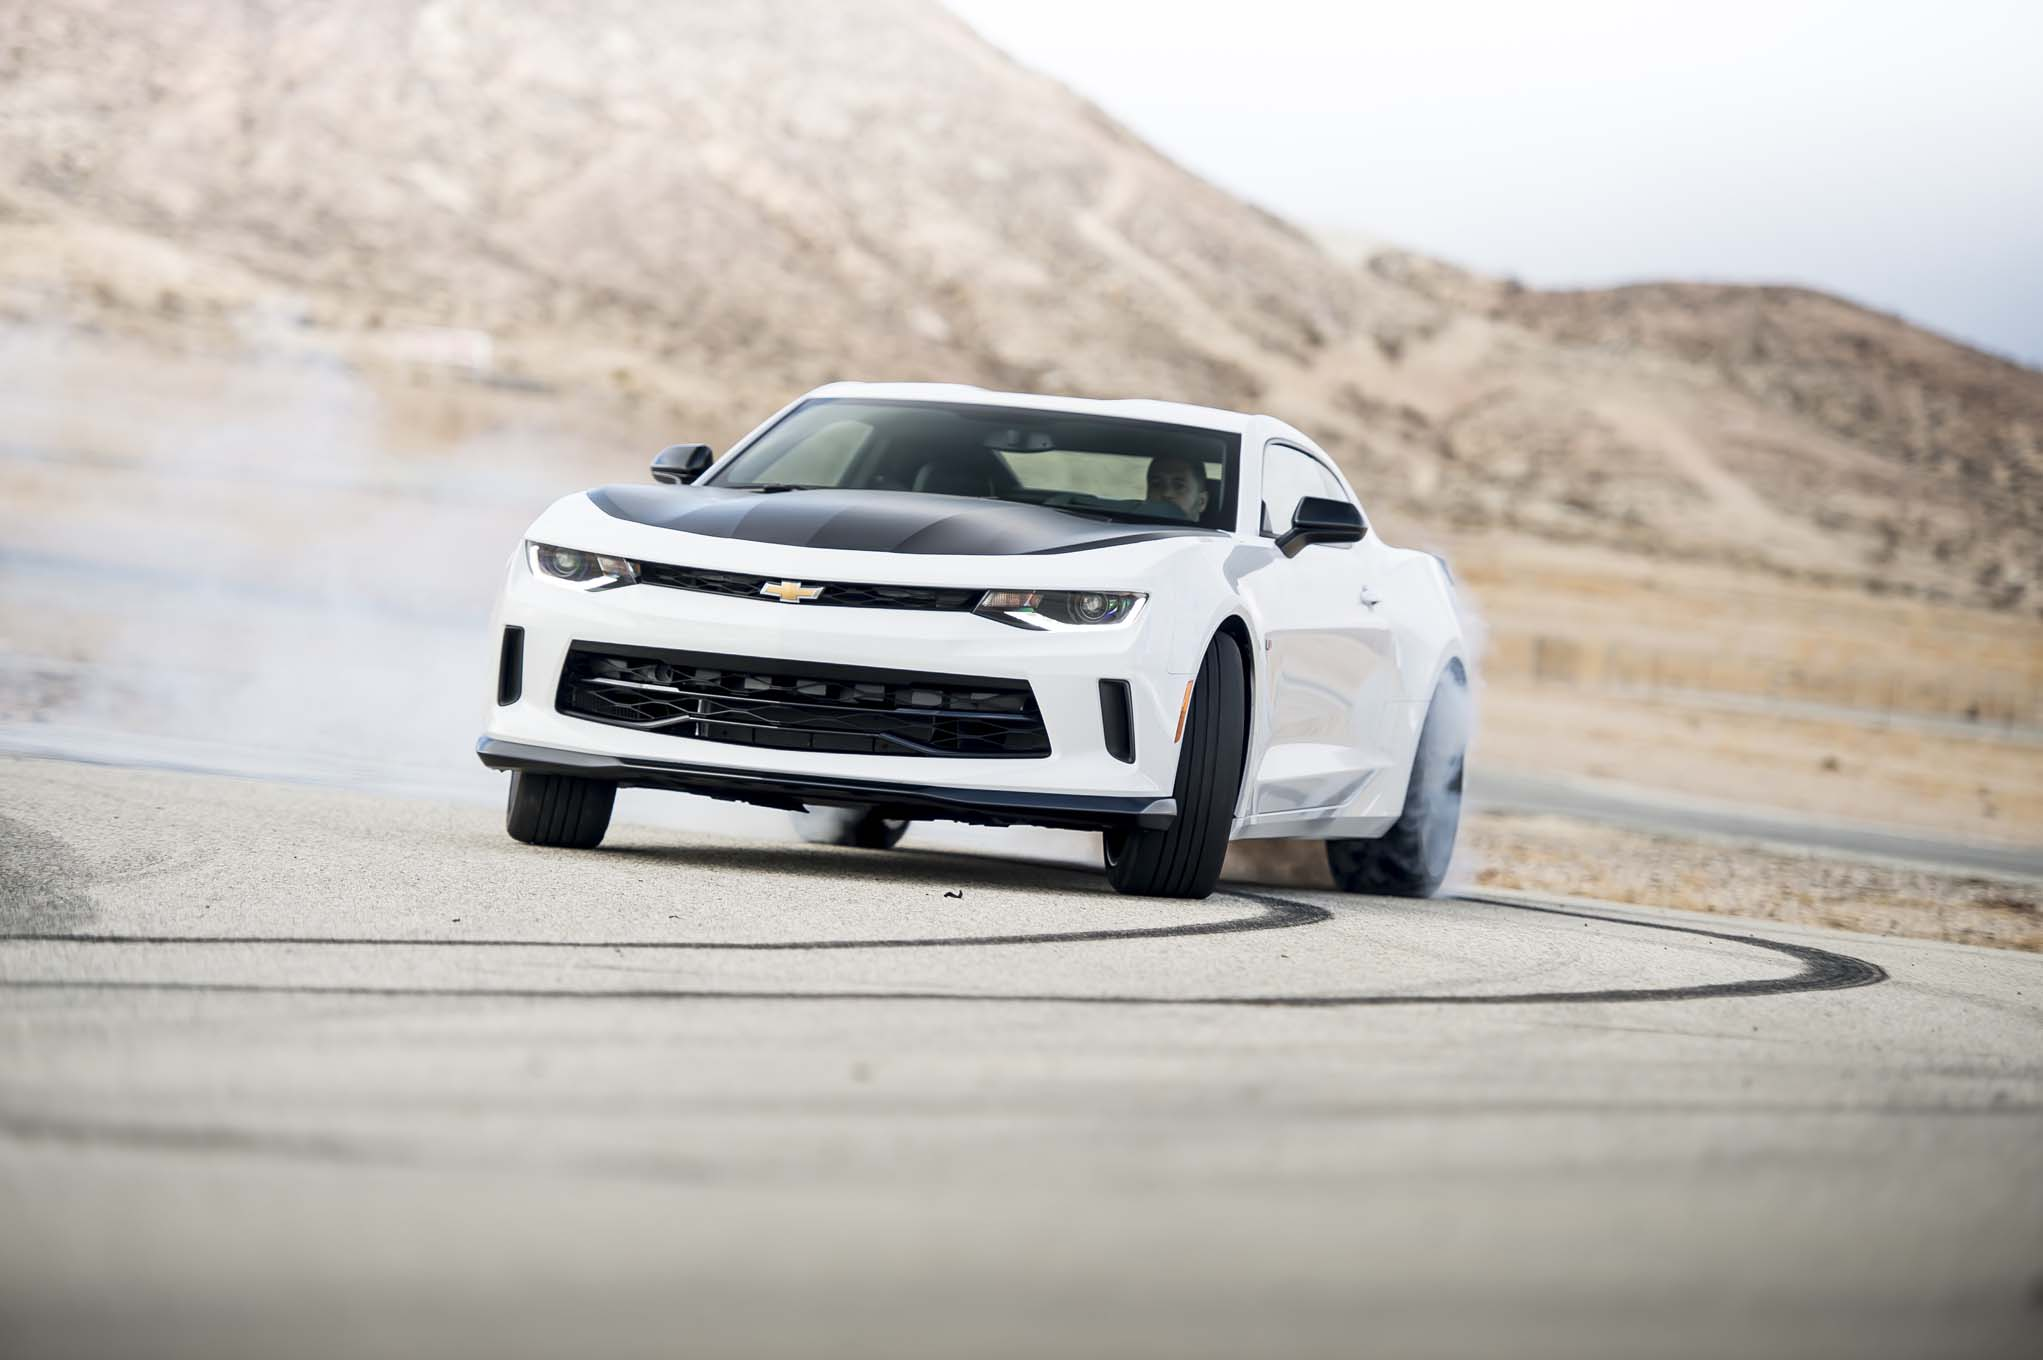 2017 Chevrolet Camaro 2LT 1LE front three quarter